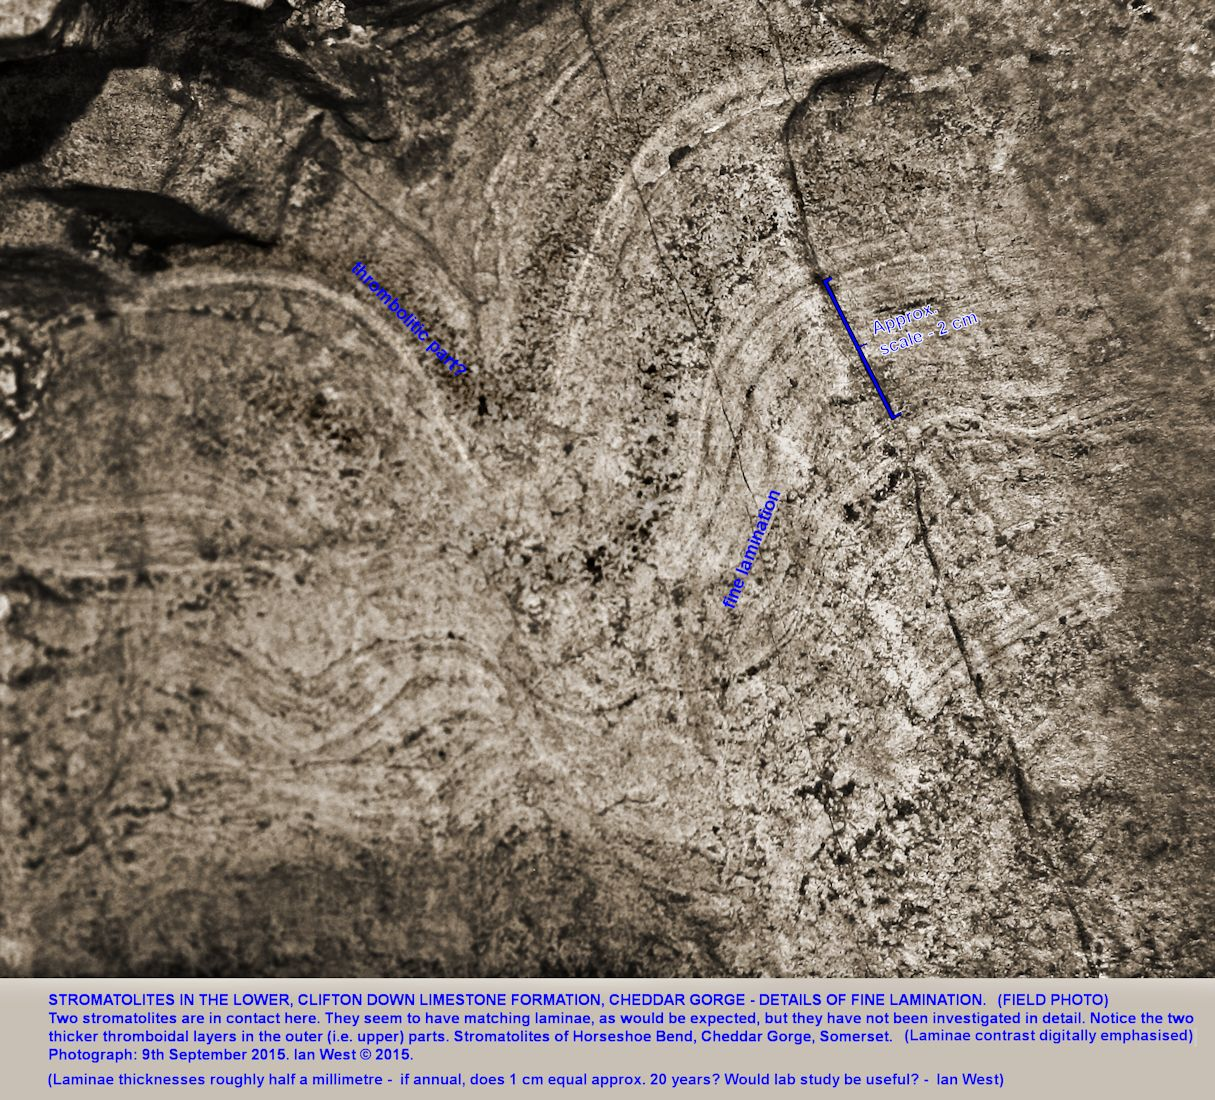 Details of stromatolite mounds at the Horseshoe Bend, Cheddar Gorge, Mendip Hills, Somerset, an enhanced field photograph